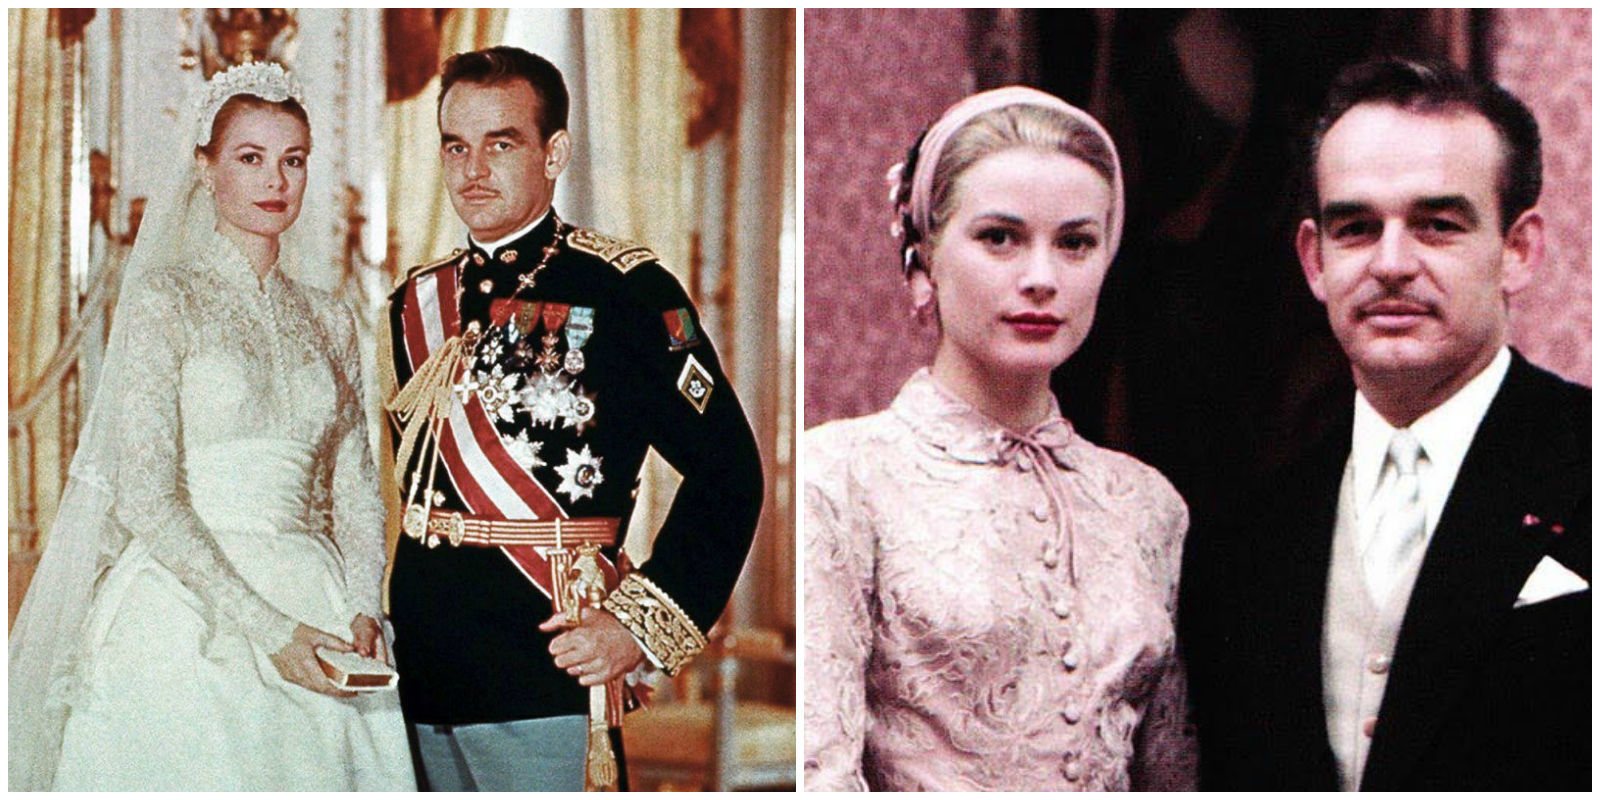 Home Decorating Ideas Pinterest Grace Kelly Had A Second Pink Wedding Dress What